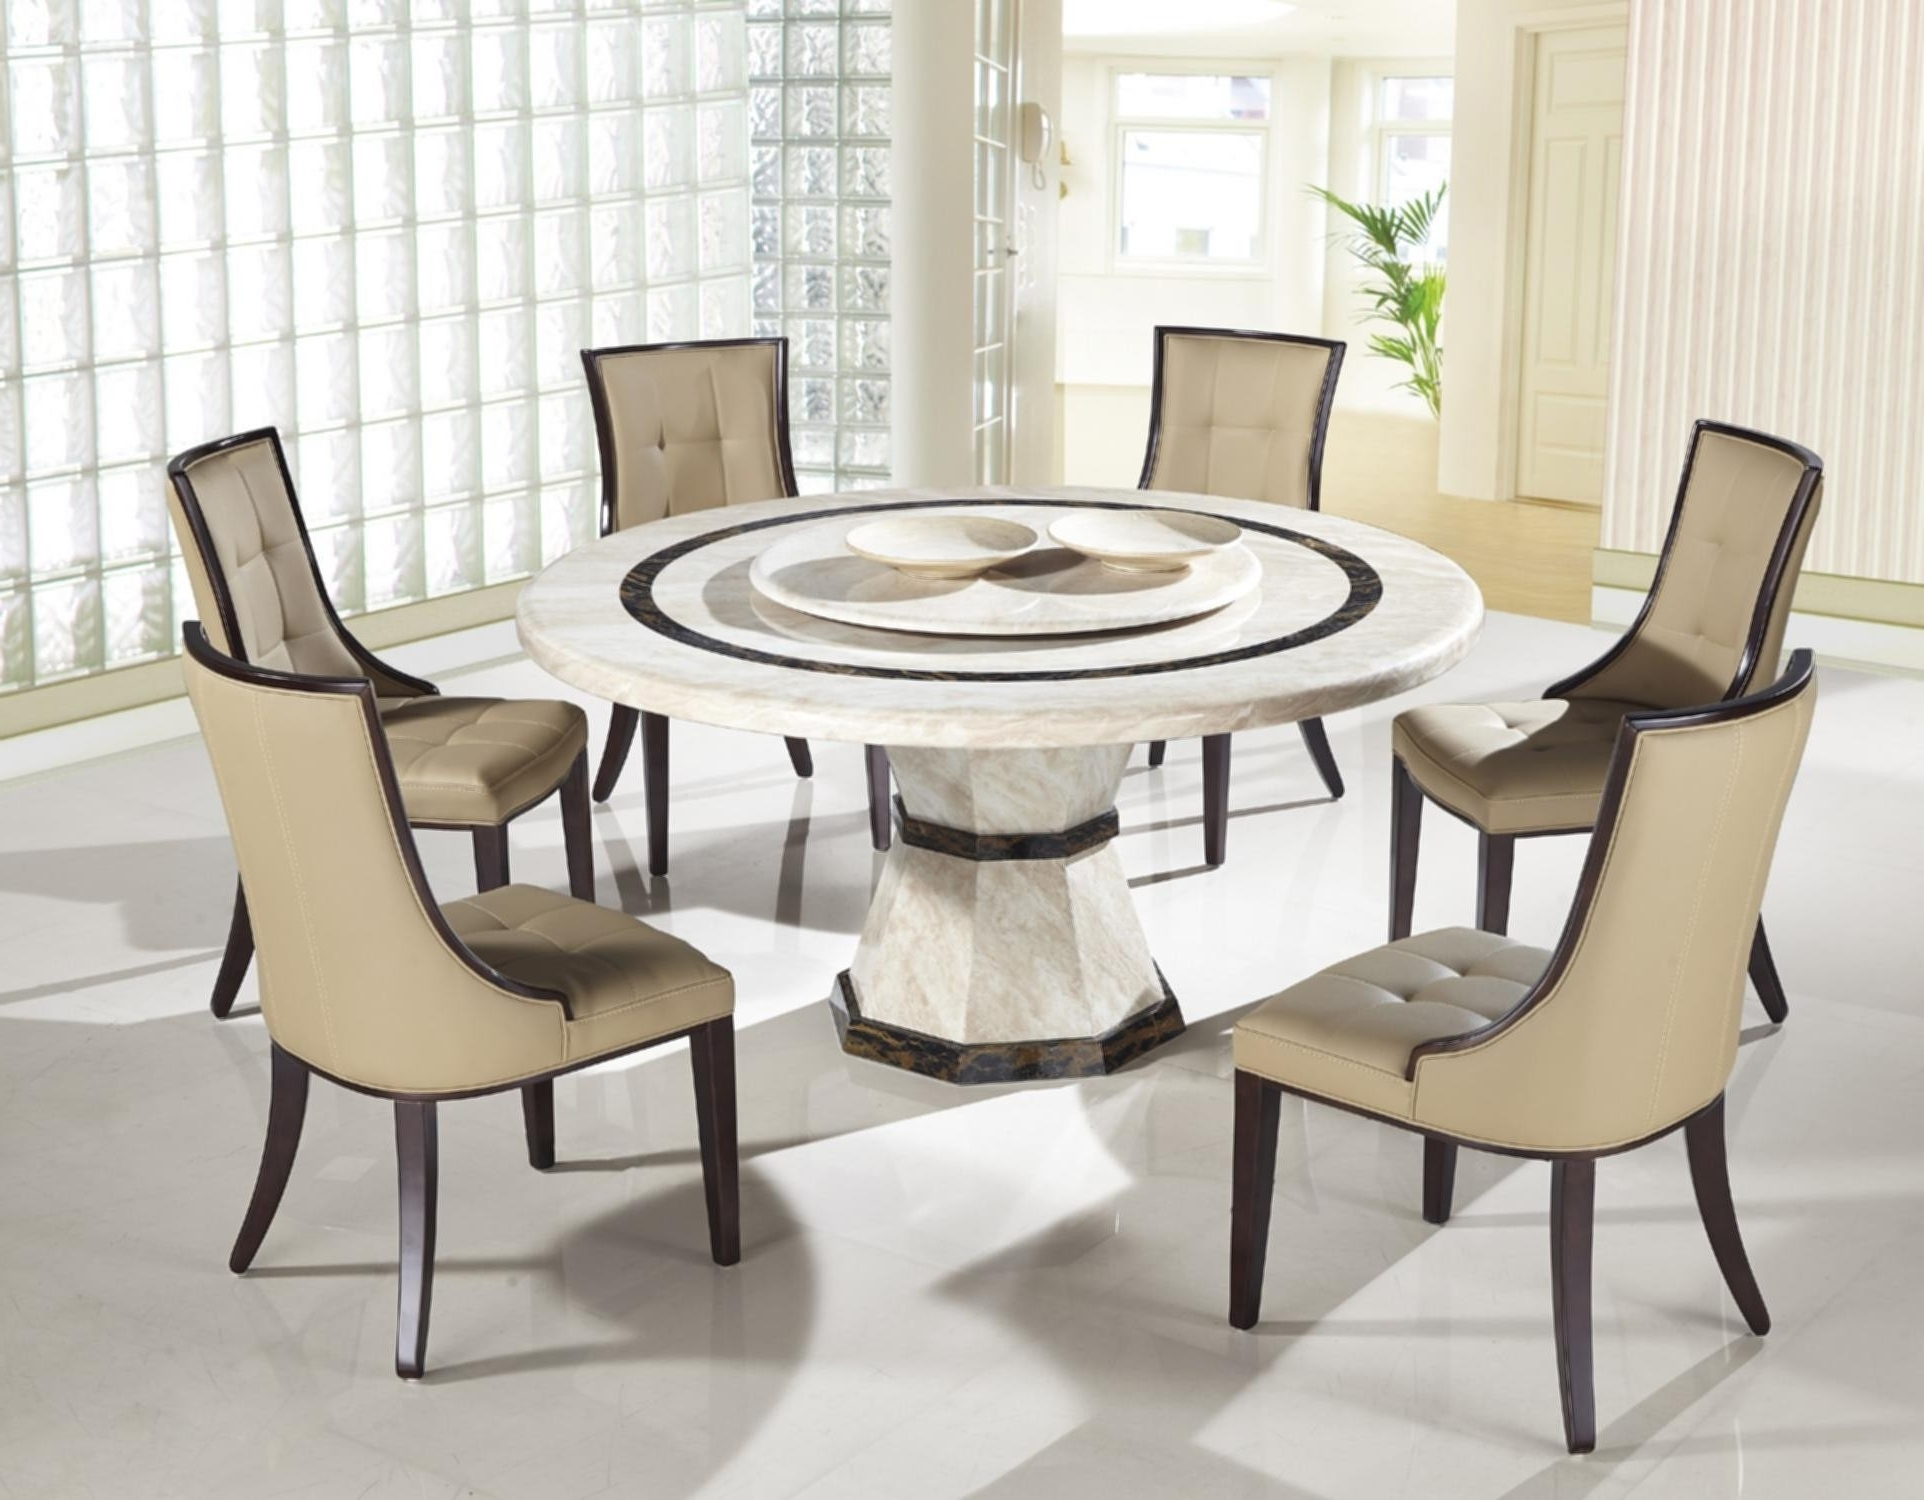 Small Round Dining Table For 4 Inspirational Luxury Contemporary For Preferred Contemporary Dining Room Chairs (View 21 of 25)